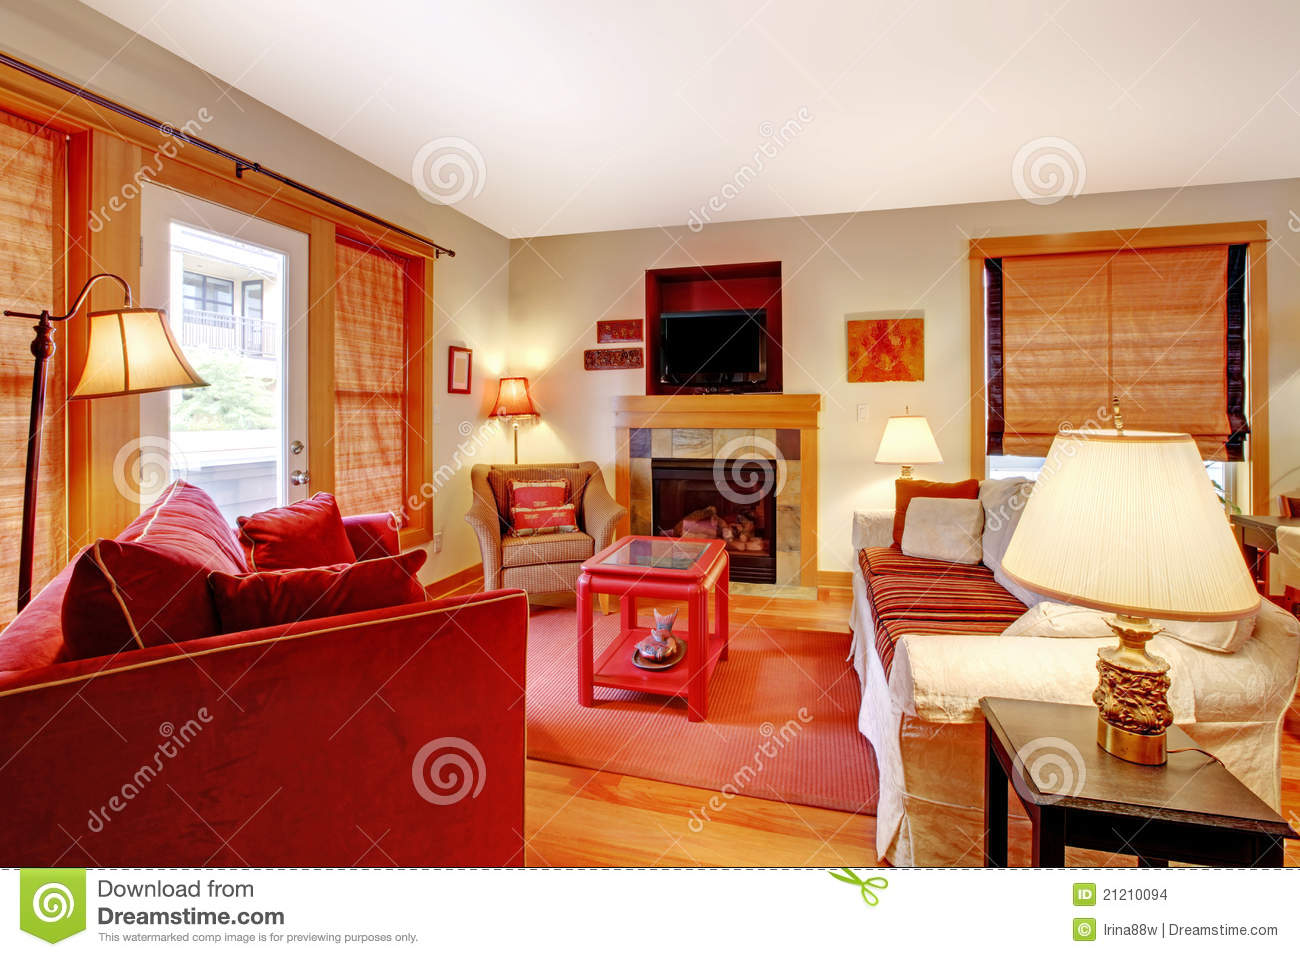 Rode Design Bank.Cozy Living Room With Red Sofa And Fireplace Stock Photo Image